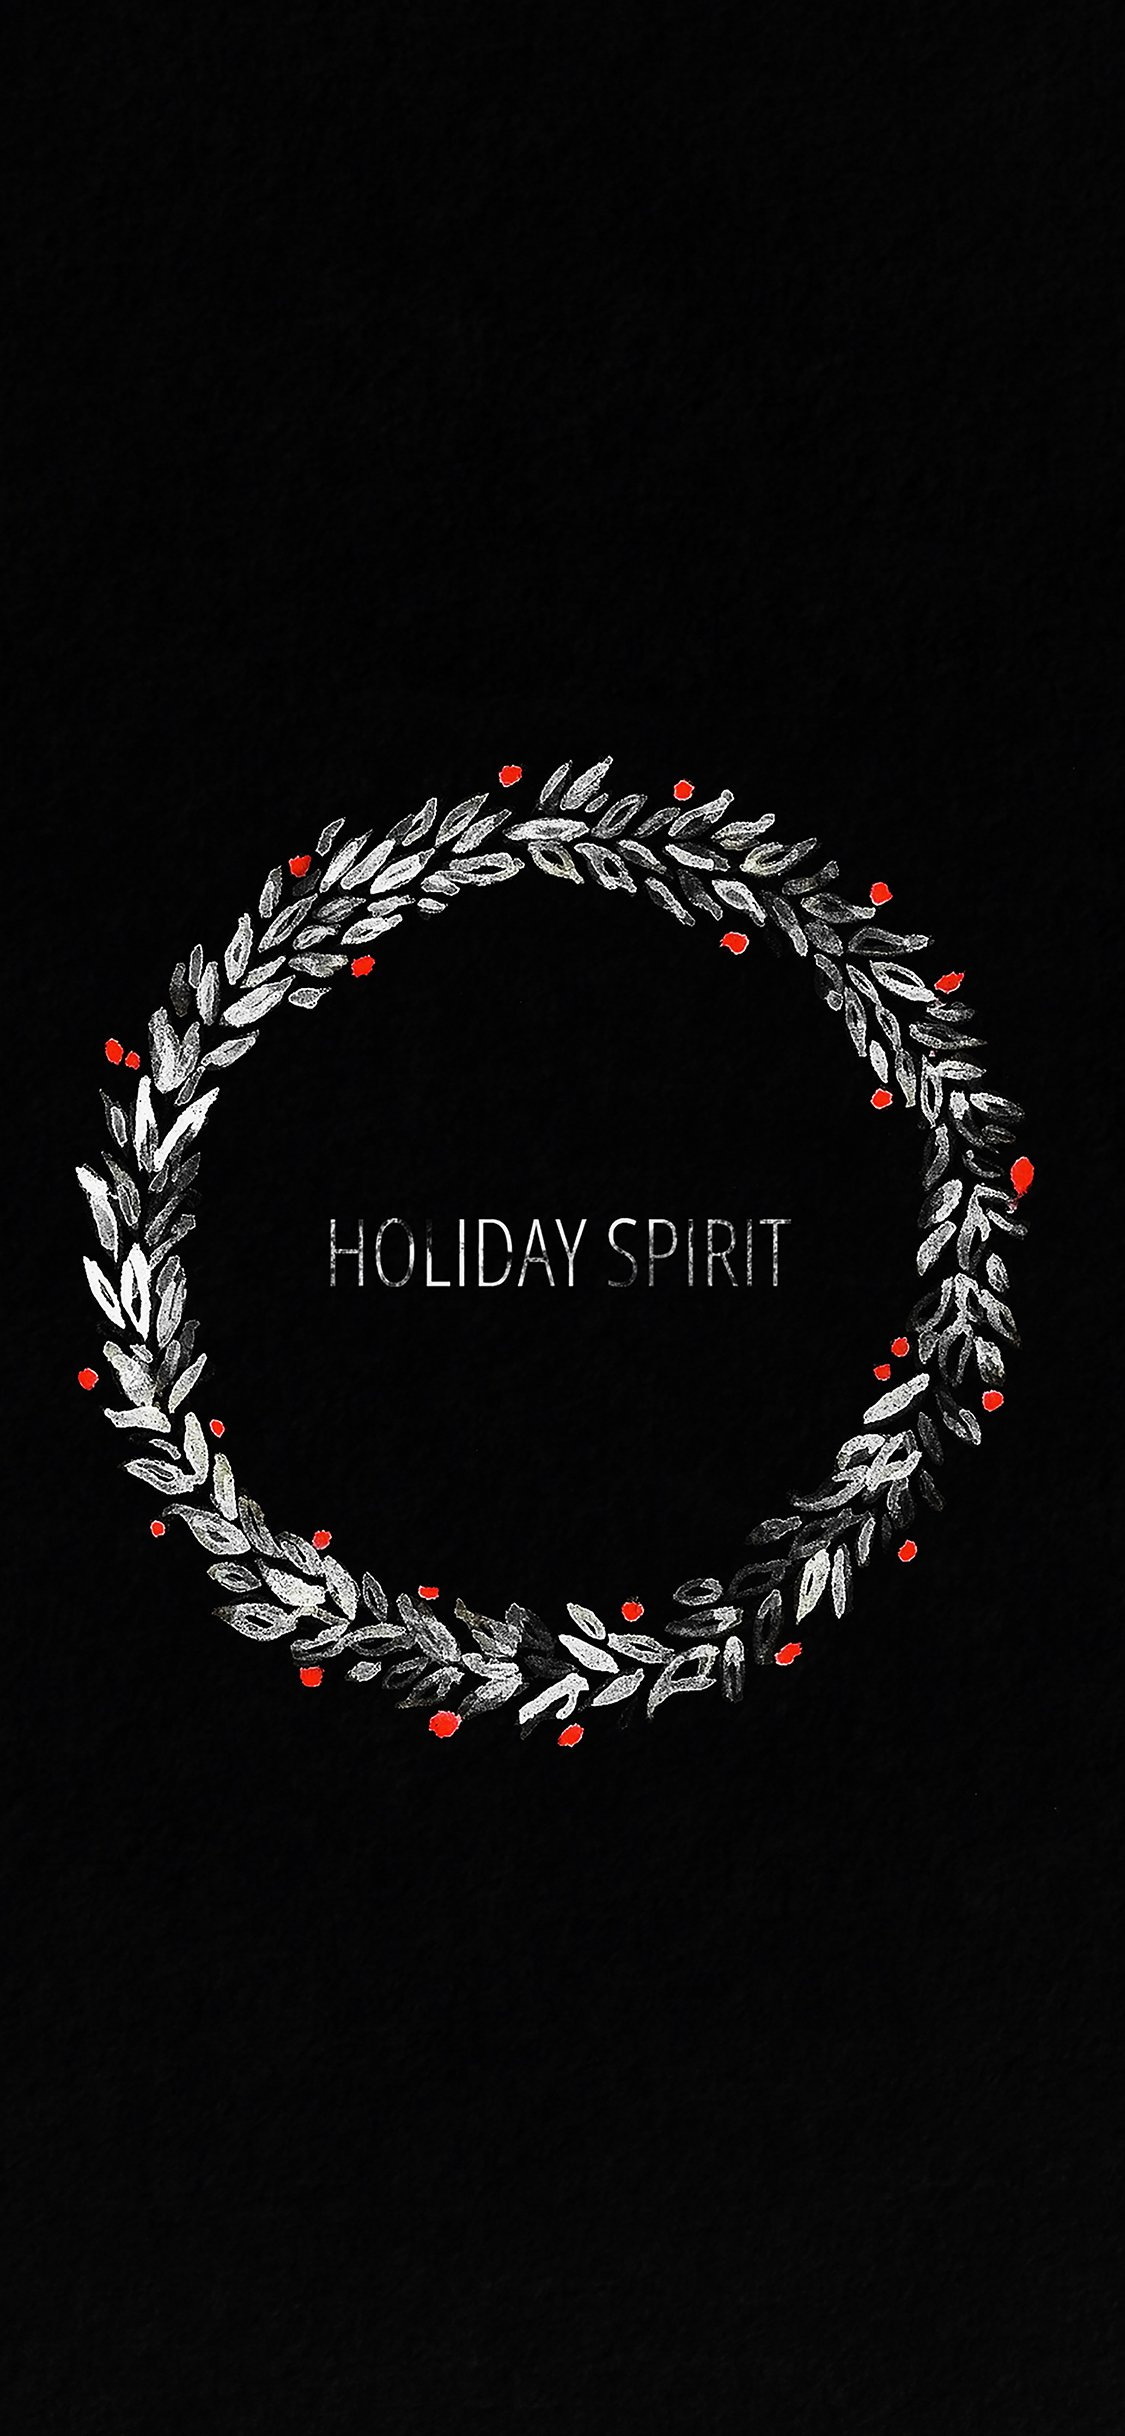 Holiday Spirit Dark Christmas Wallpaper For Iphone X Download